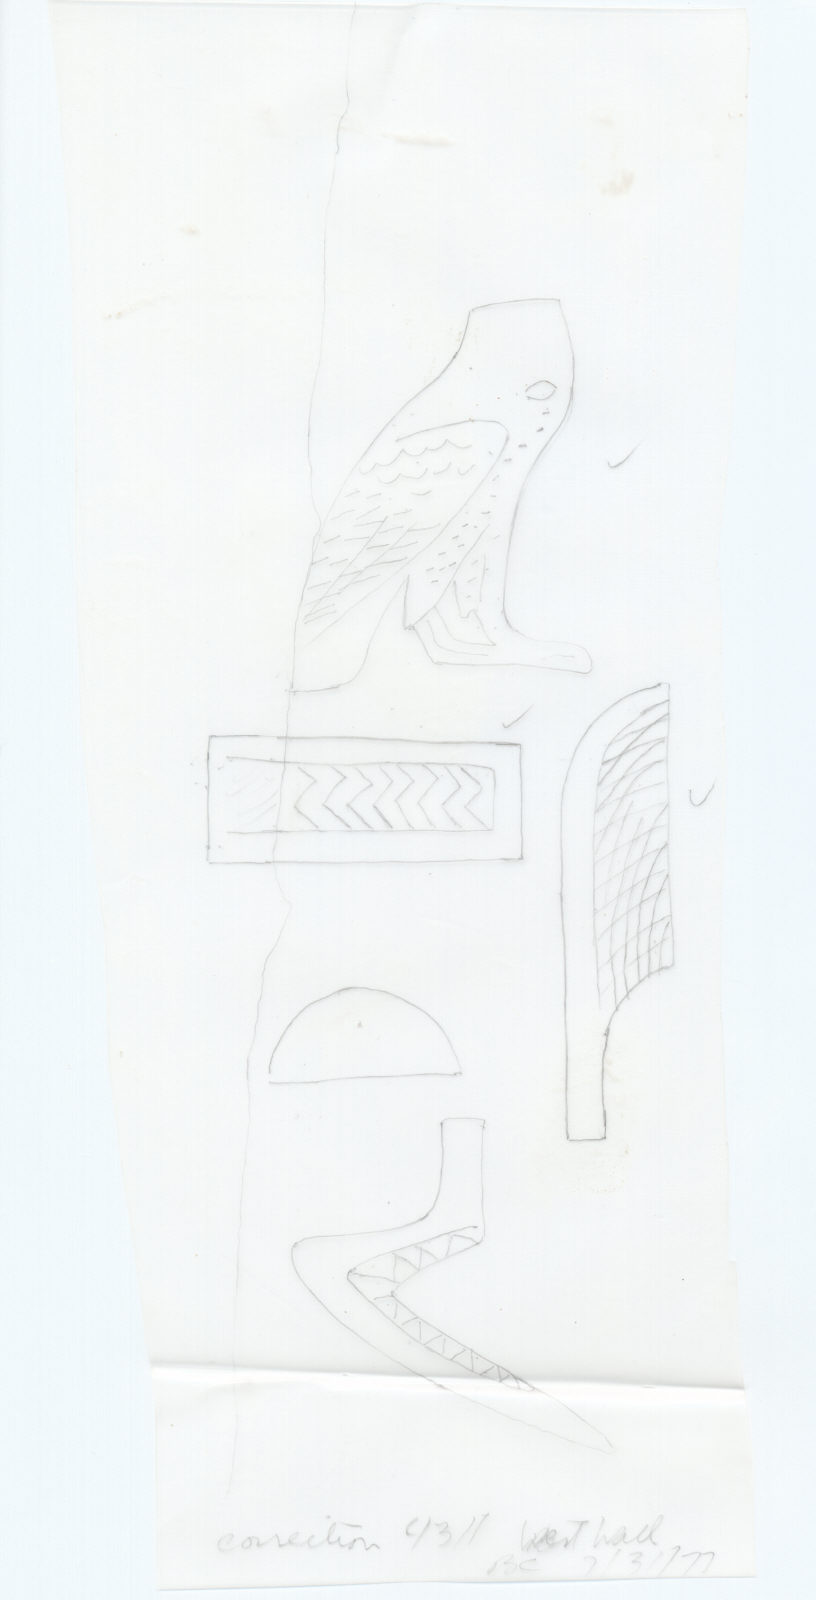 Drawings: G 4311: inscription from W wall, N false door (detail)